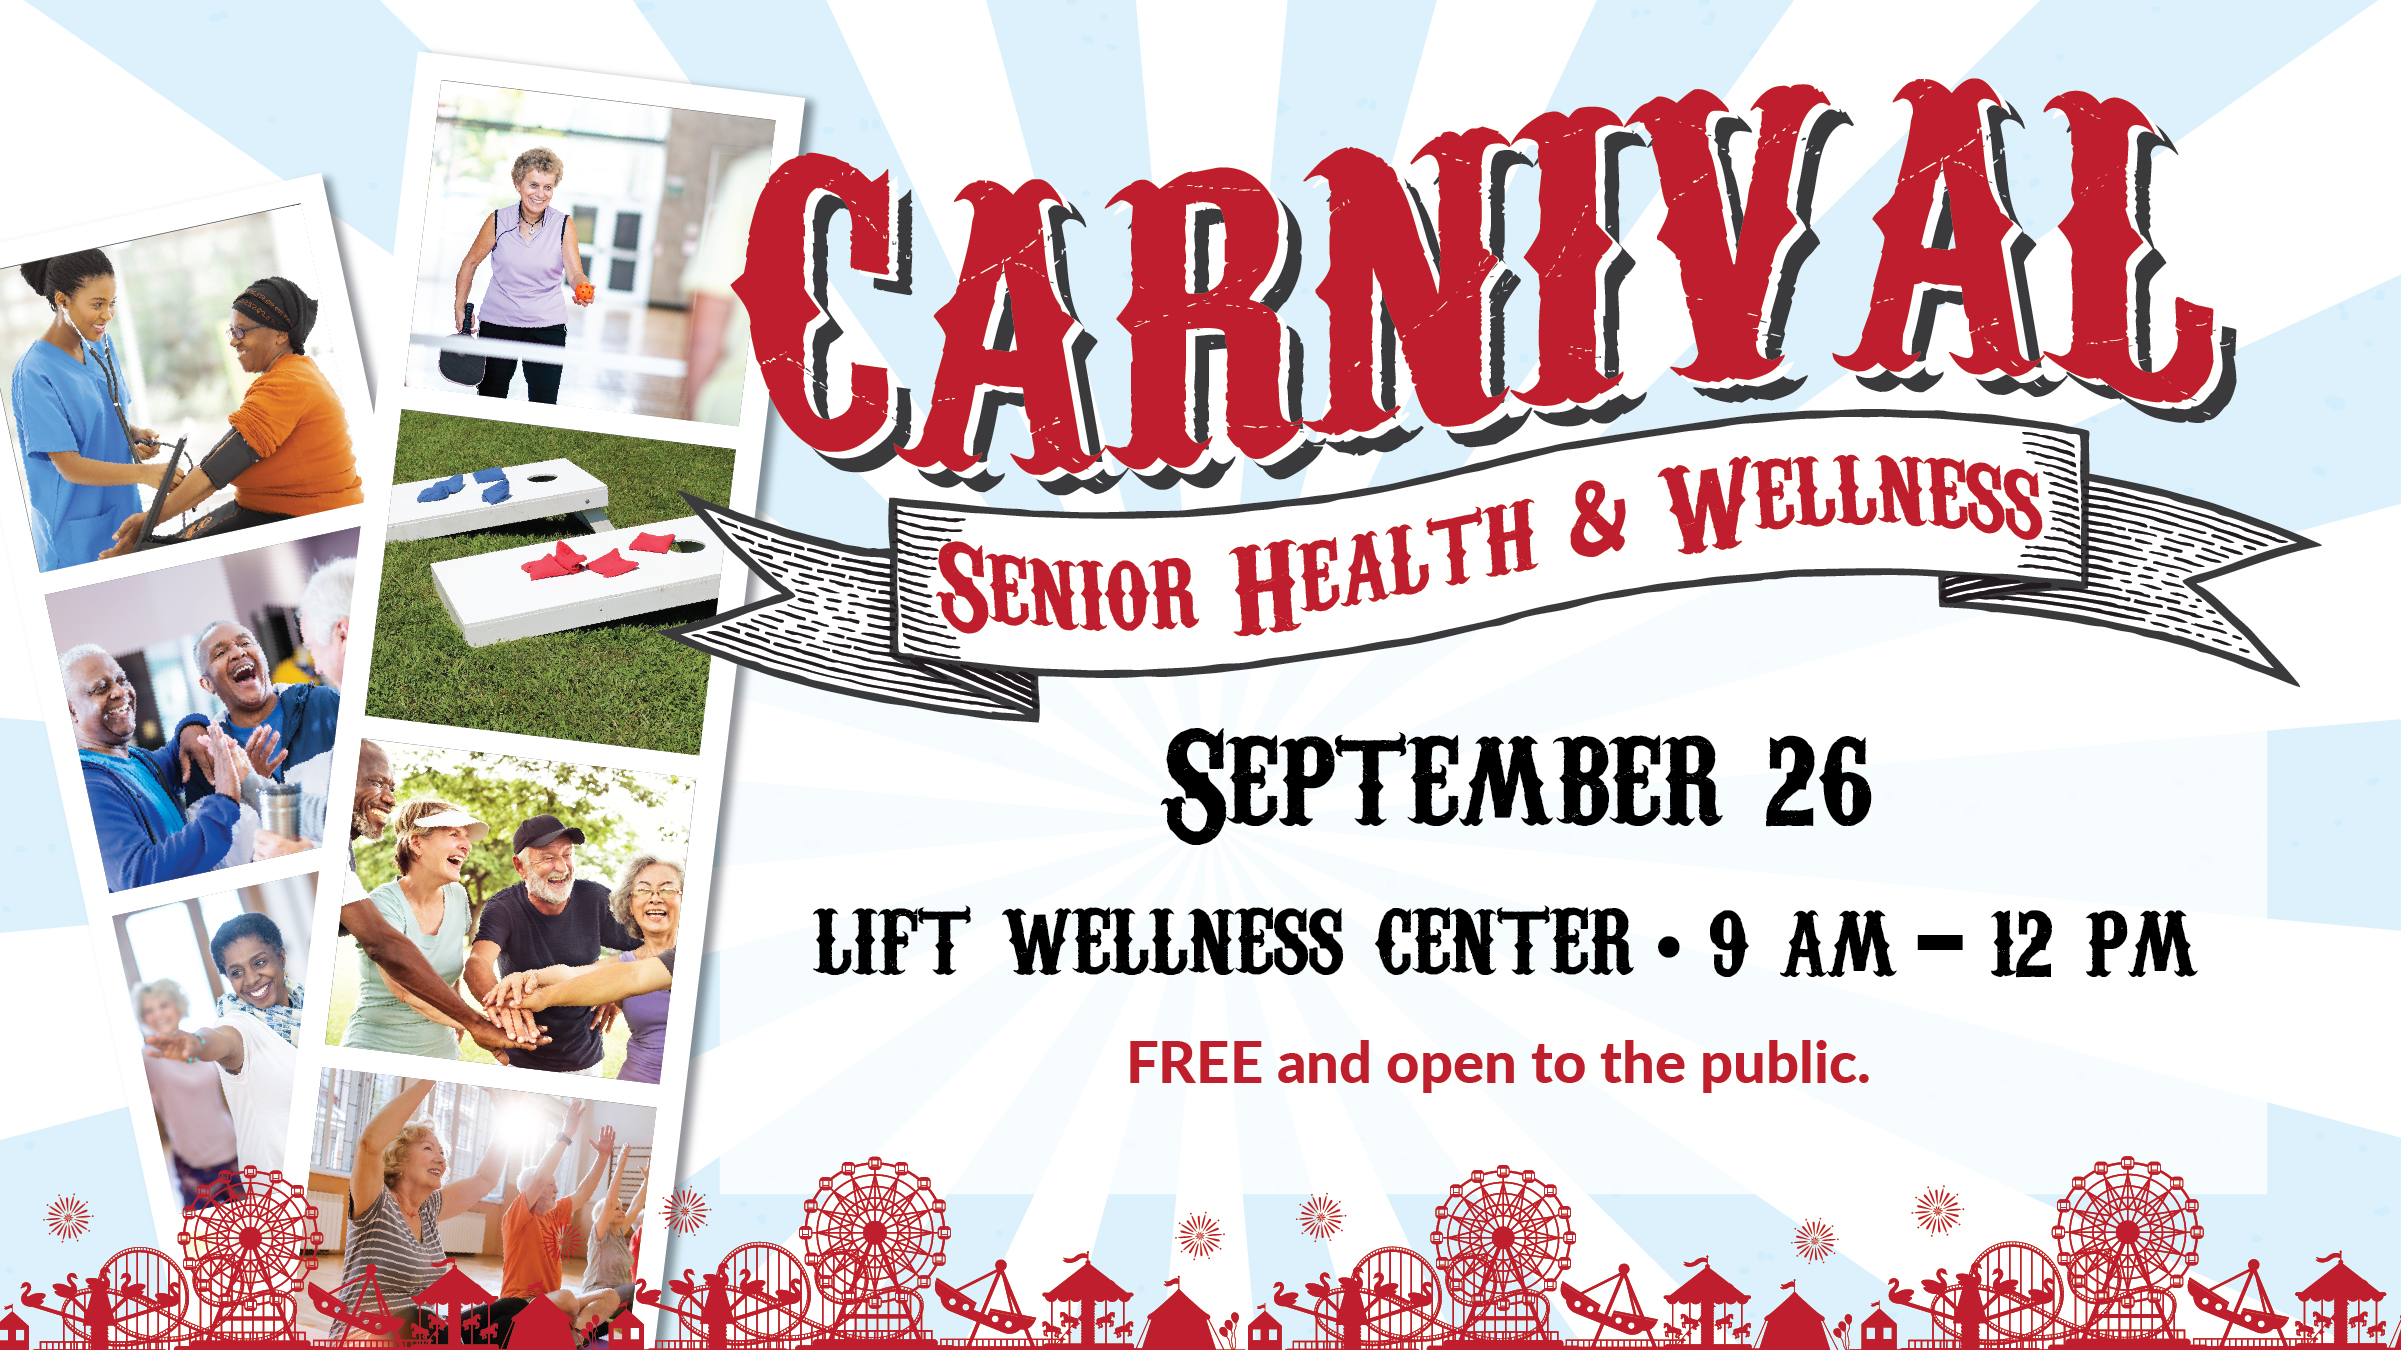 Senior Health & Wellness Carnival